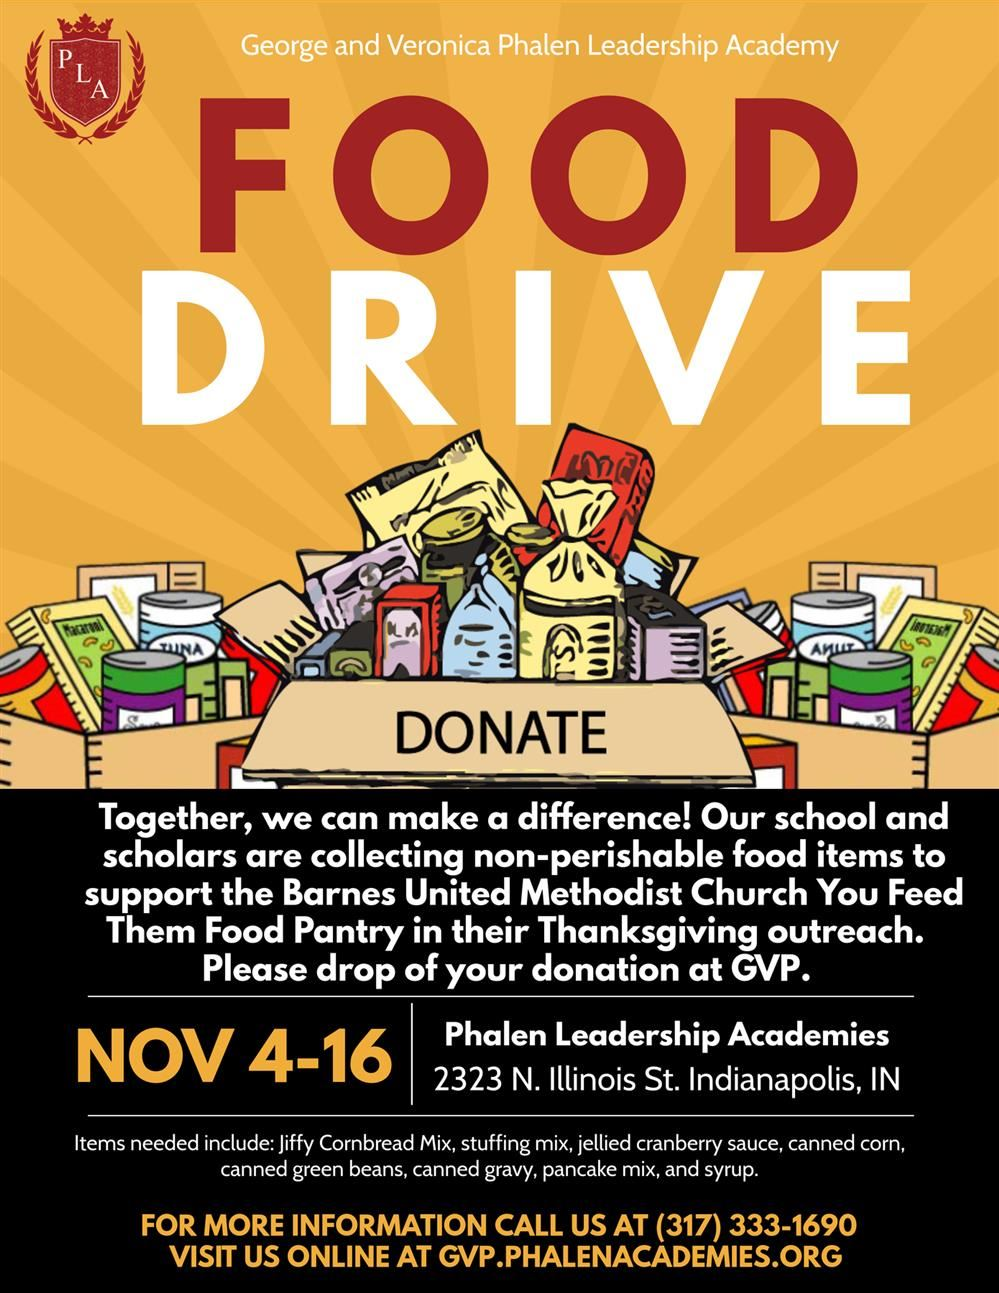 Phalen Leadership Academies Food Drive